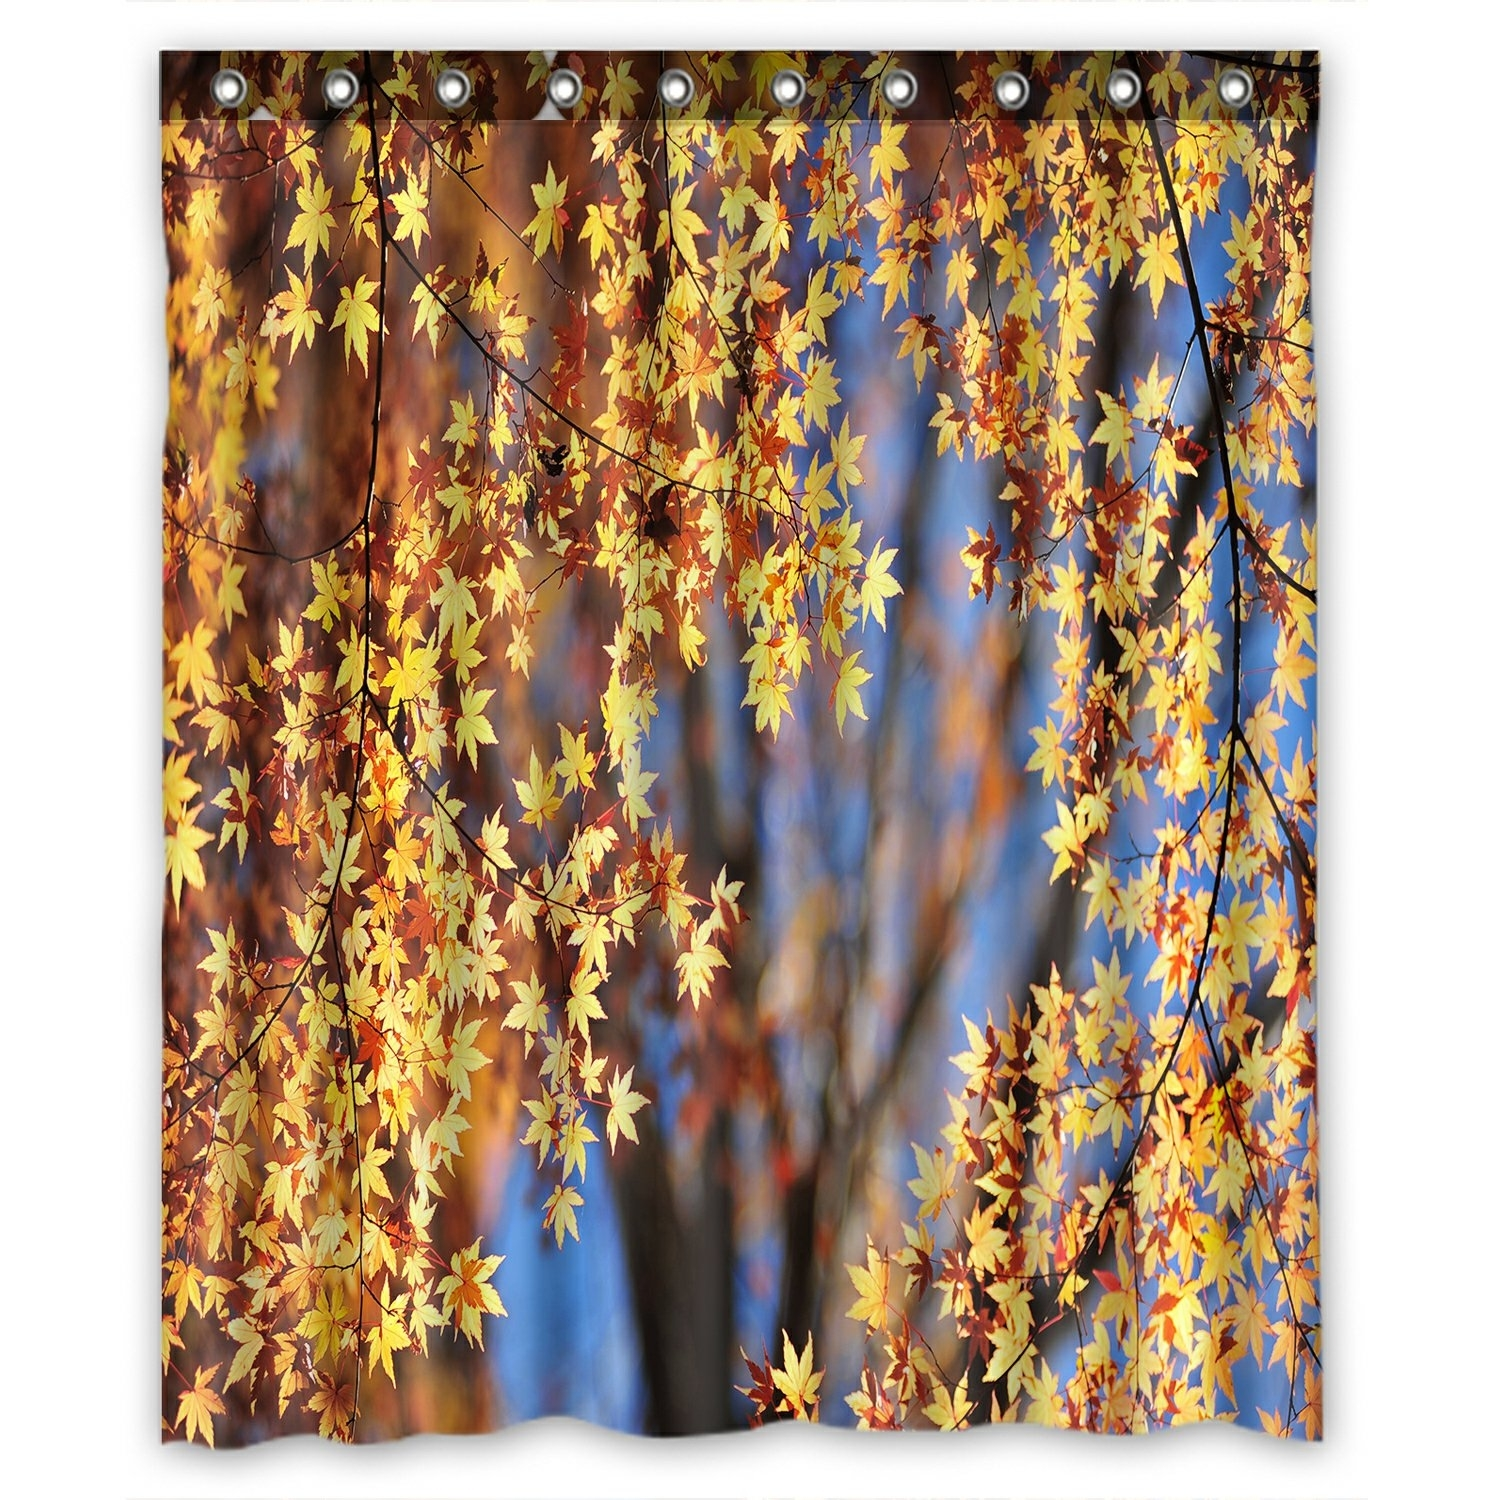 Landscape Shower Curtain, Autumn Maple Leaves Shower Curtain 60x72 inch